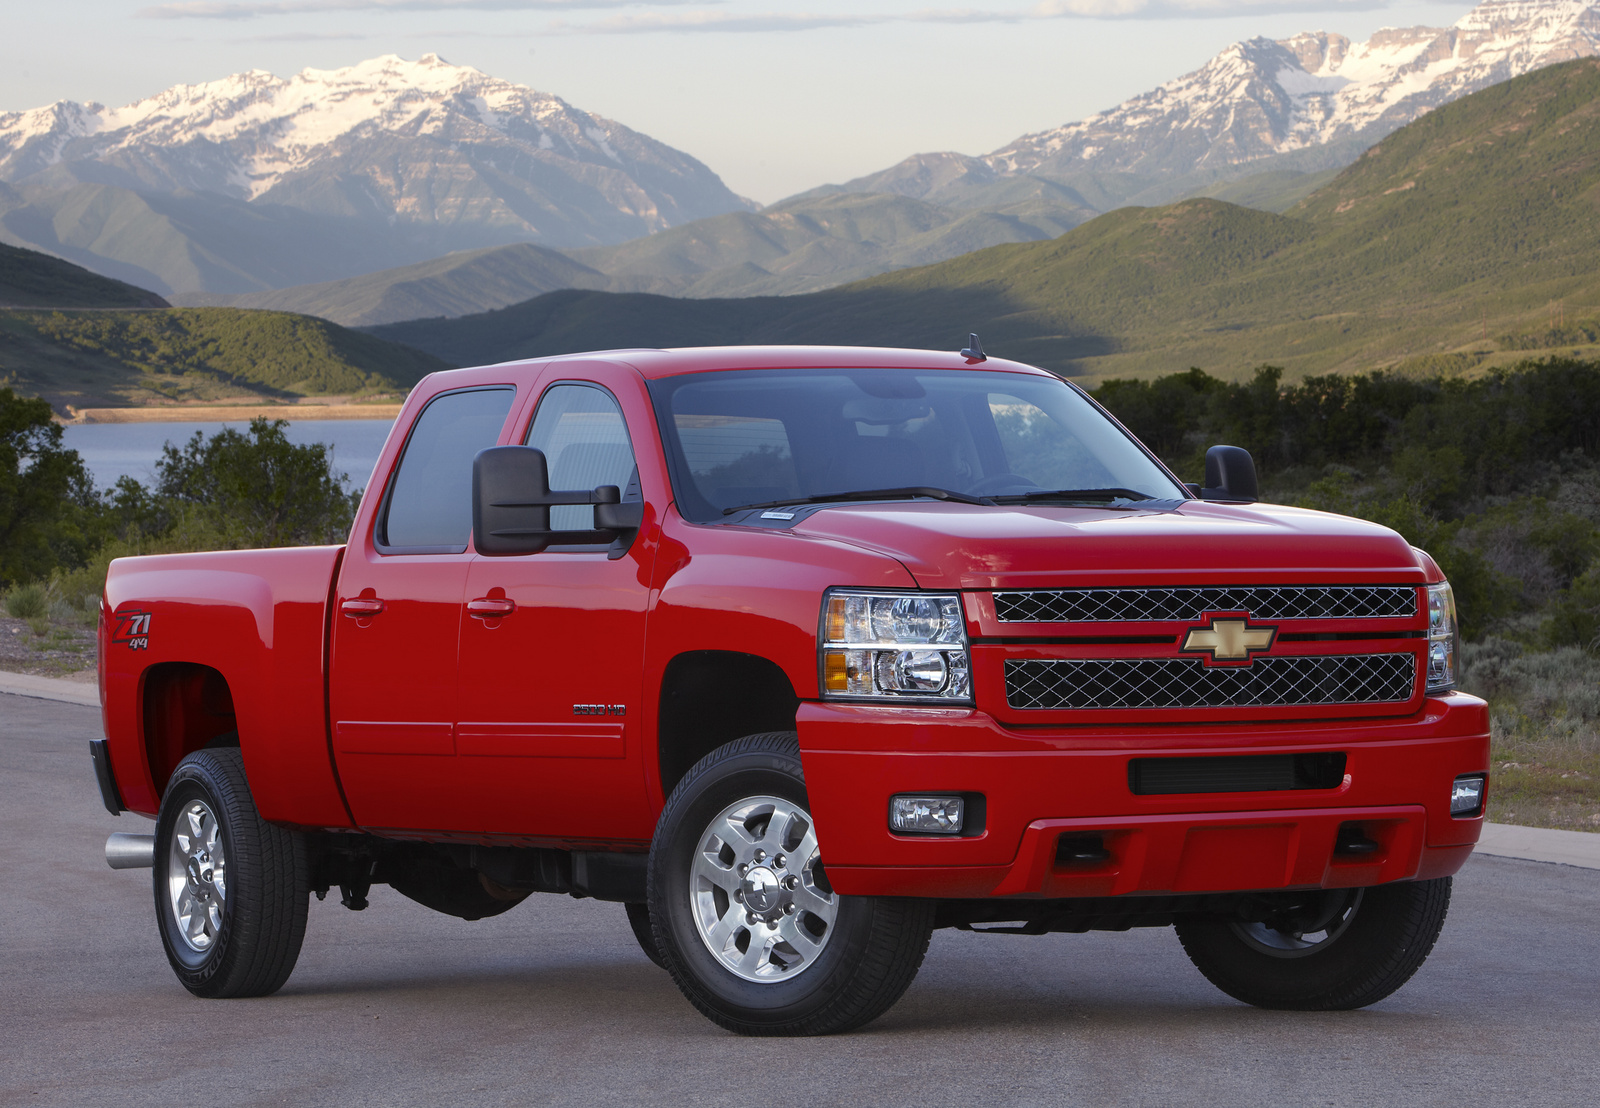 2014 chevrolet silverado 2500hd pictures cargurus. Black Bedroom Furniture Sets. Home Design Ideas